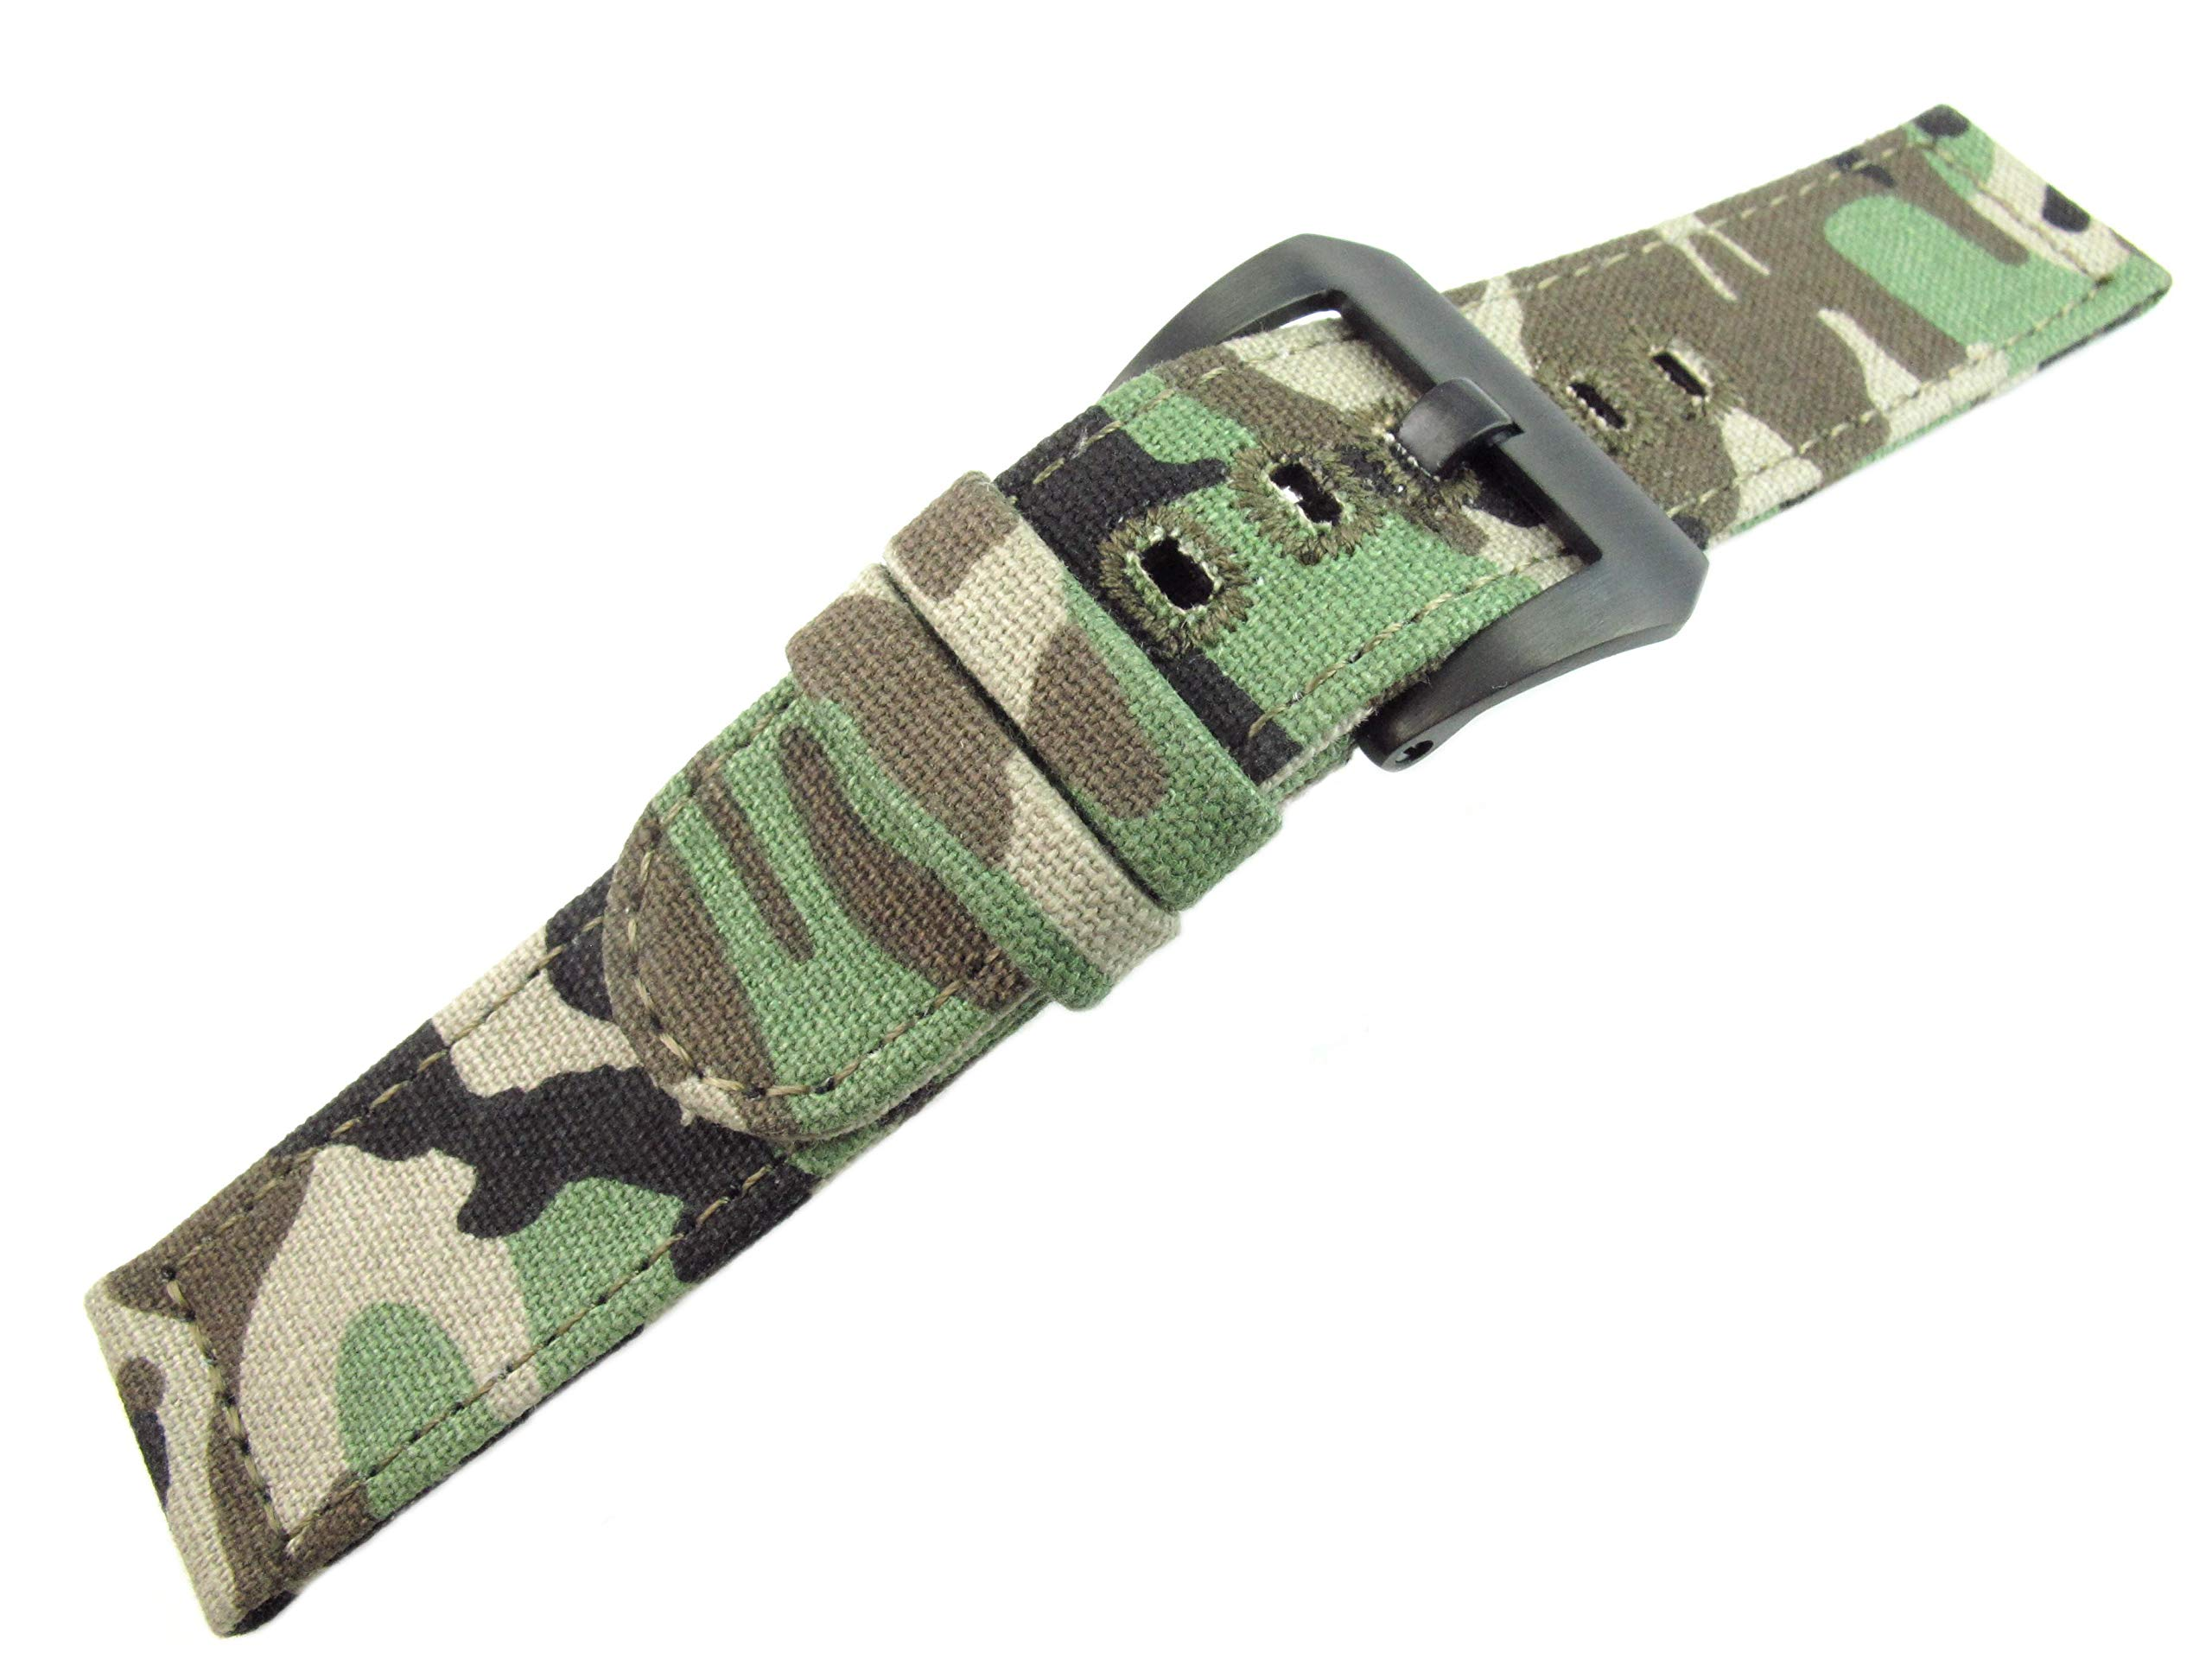 26mm Watch Strap Watchband Canvas Camouflage Sports Army Military Soft Thin 2.5mm Panerai Screw in Brushed Solid Buckle Fashion Trend New JRRS7777 (Green Camouflage Brushed Black Buckle)